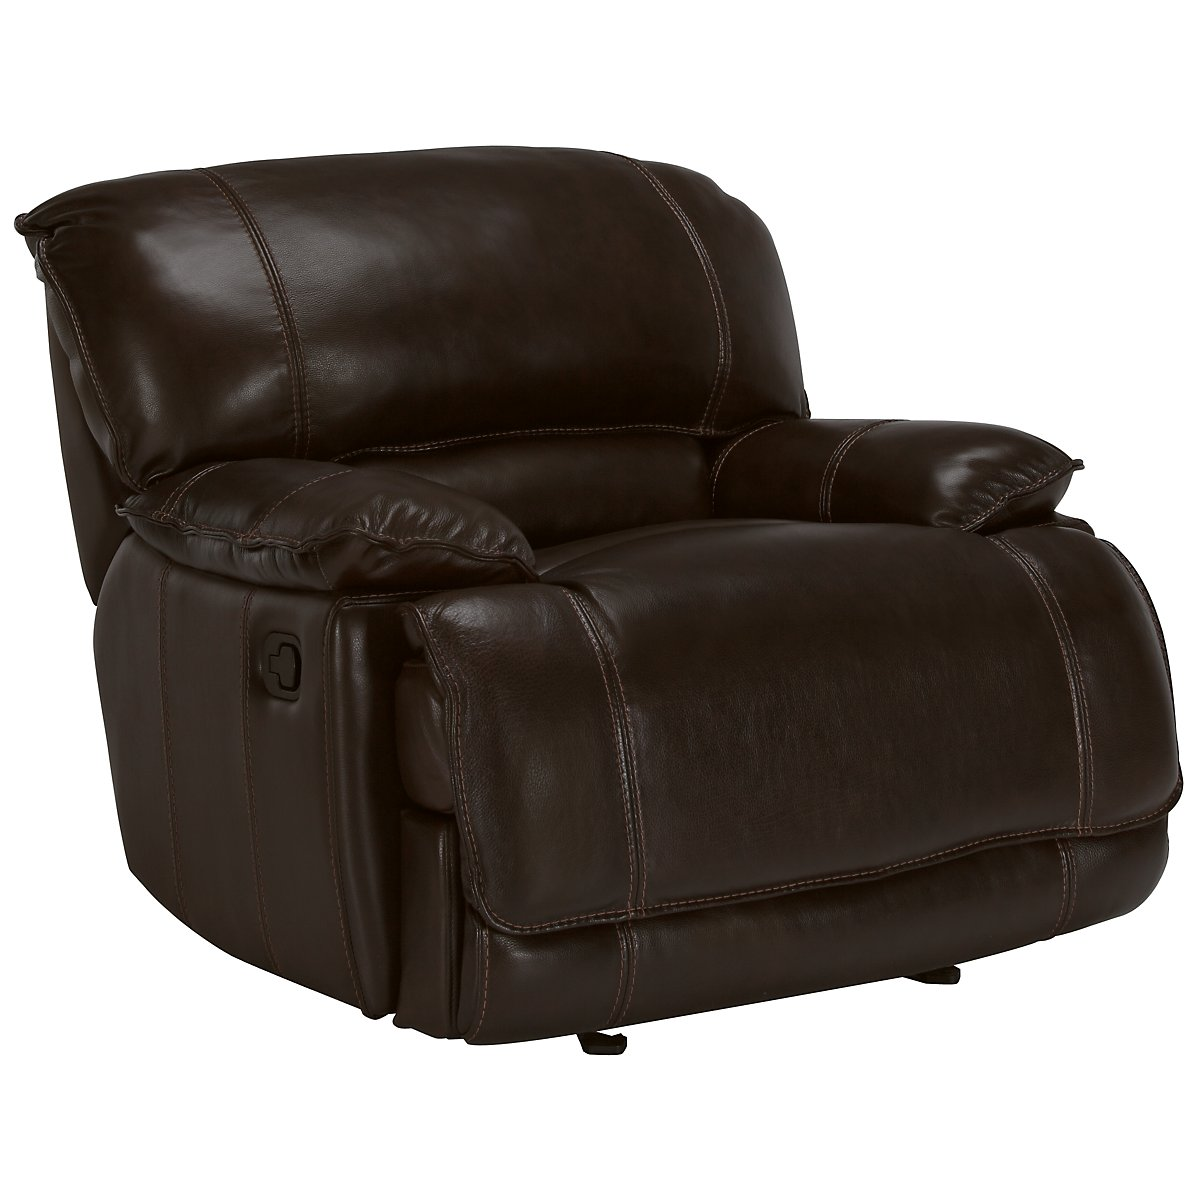 Benson Dark Brown Leather & Vinyl Power Recliner